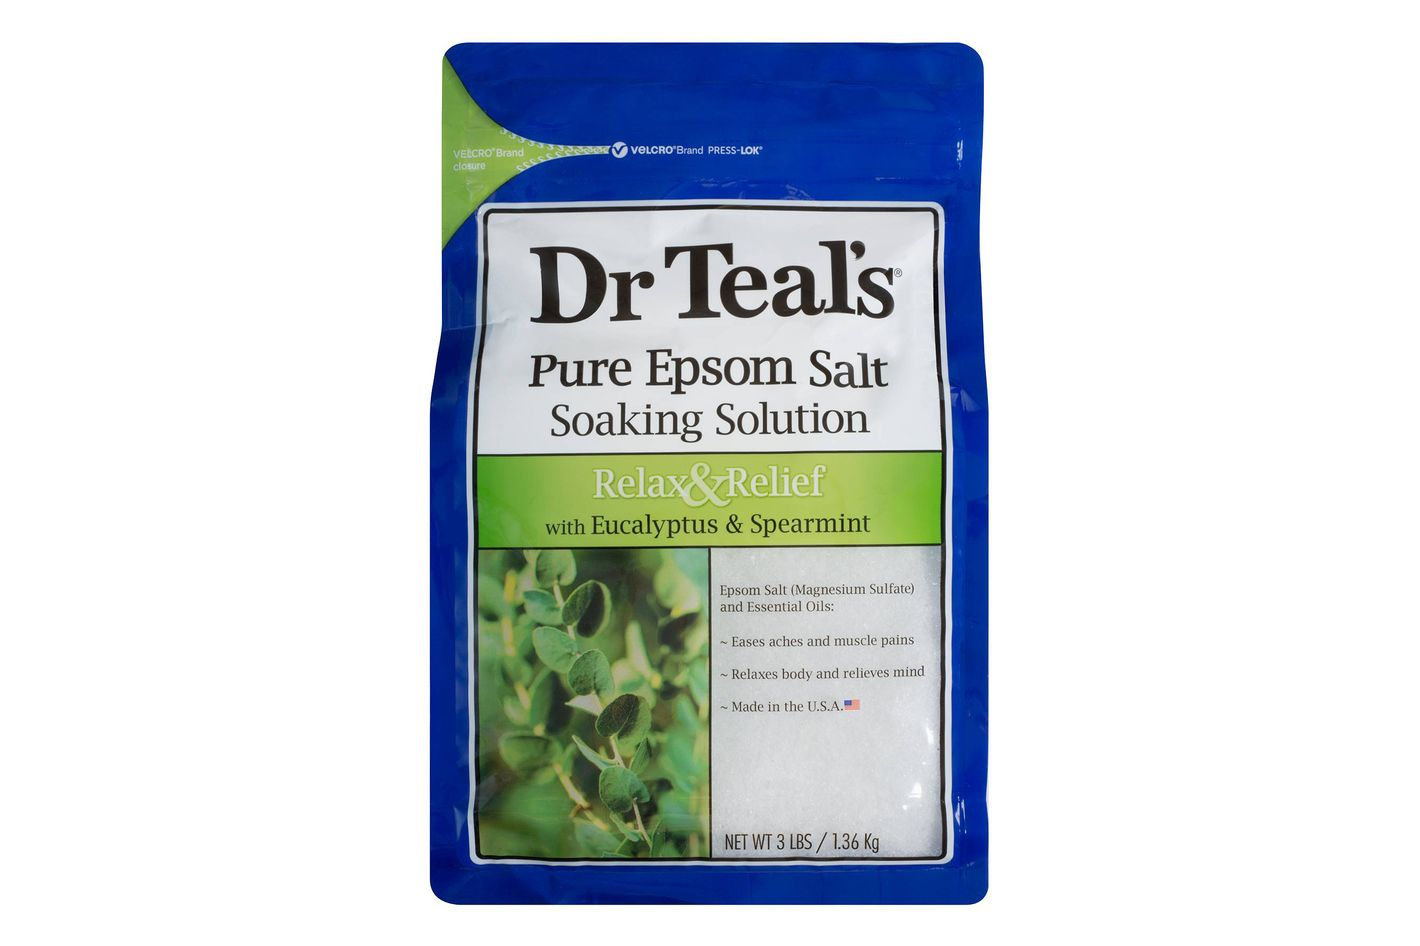 Dr. Teal's Pure Epsom Salts